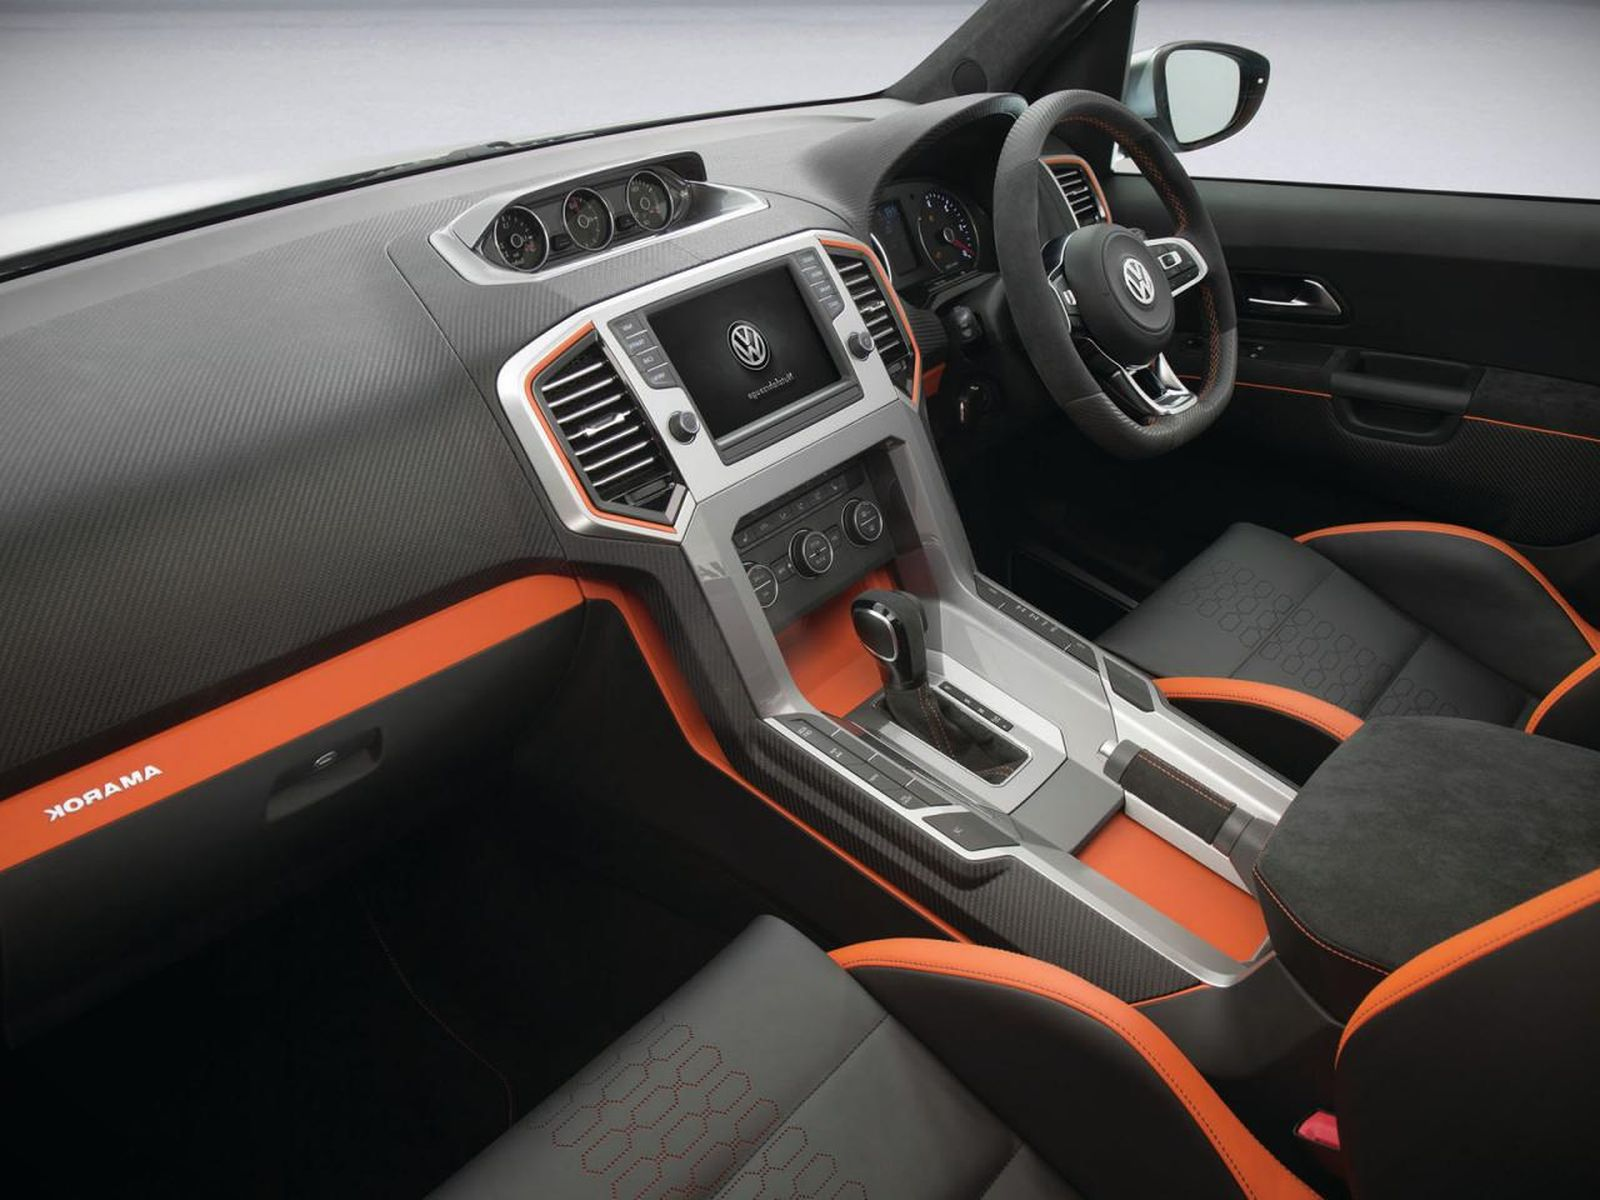 2019 VW Amarok Concept Interior Images